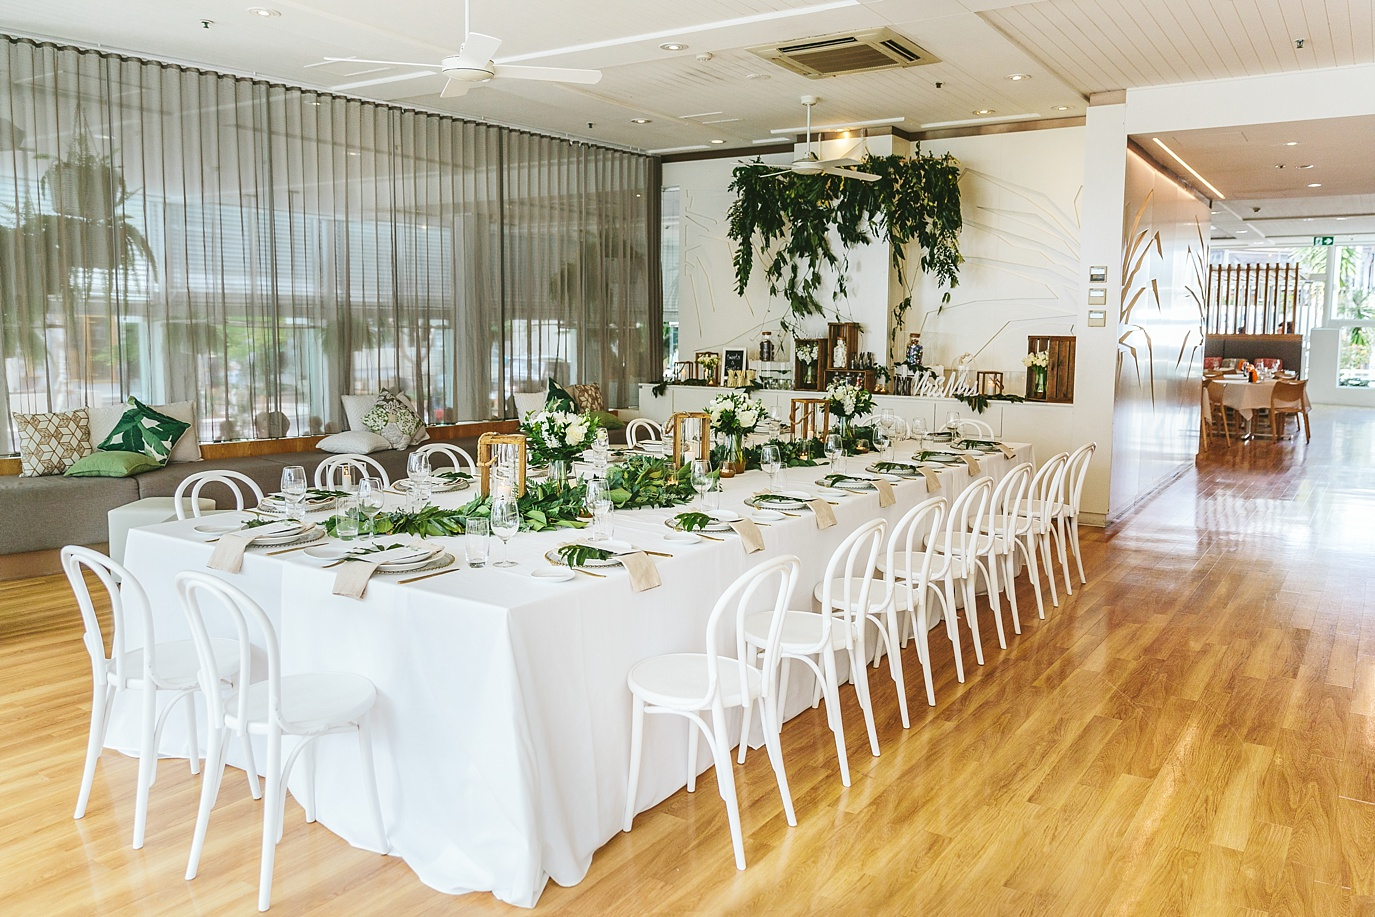 Sofitel Noosa Pacific Resort - A dedicated and trusted team of specialists will personally imbue your wedding with the utmost imagination, luxury, sophistication and passion while ensuring perfection in every aspect – from special themes to exquisite cuisine.